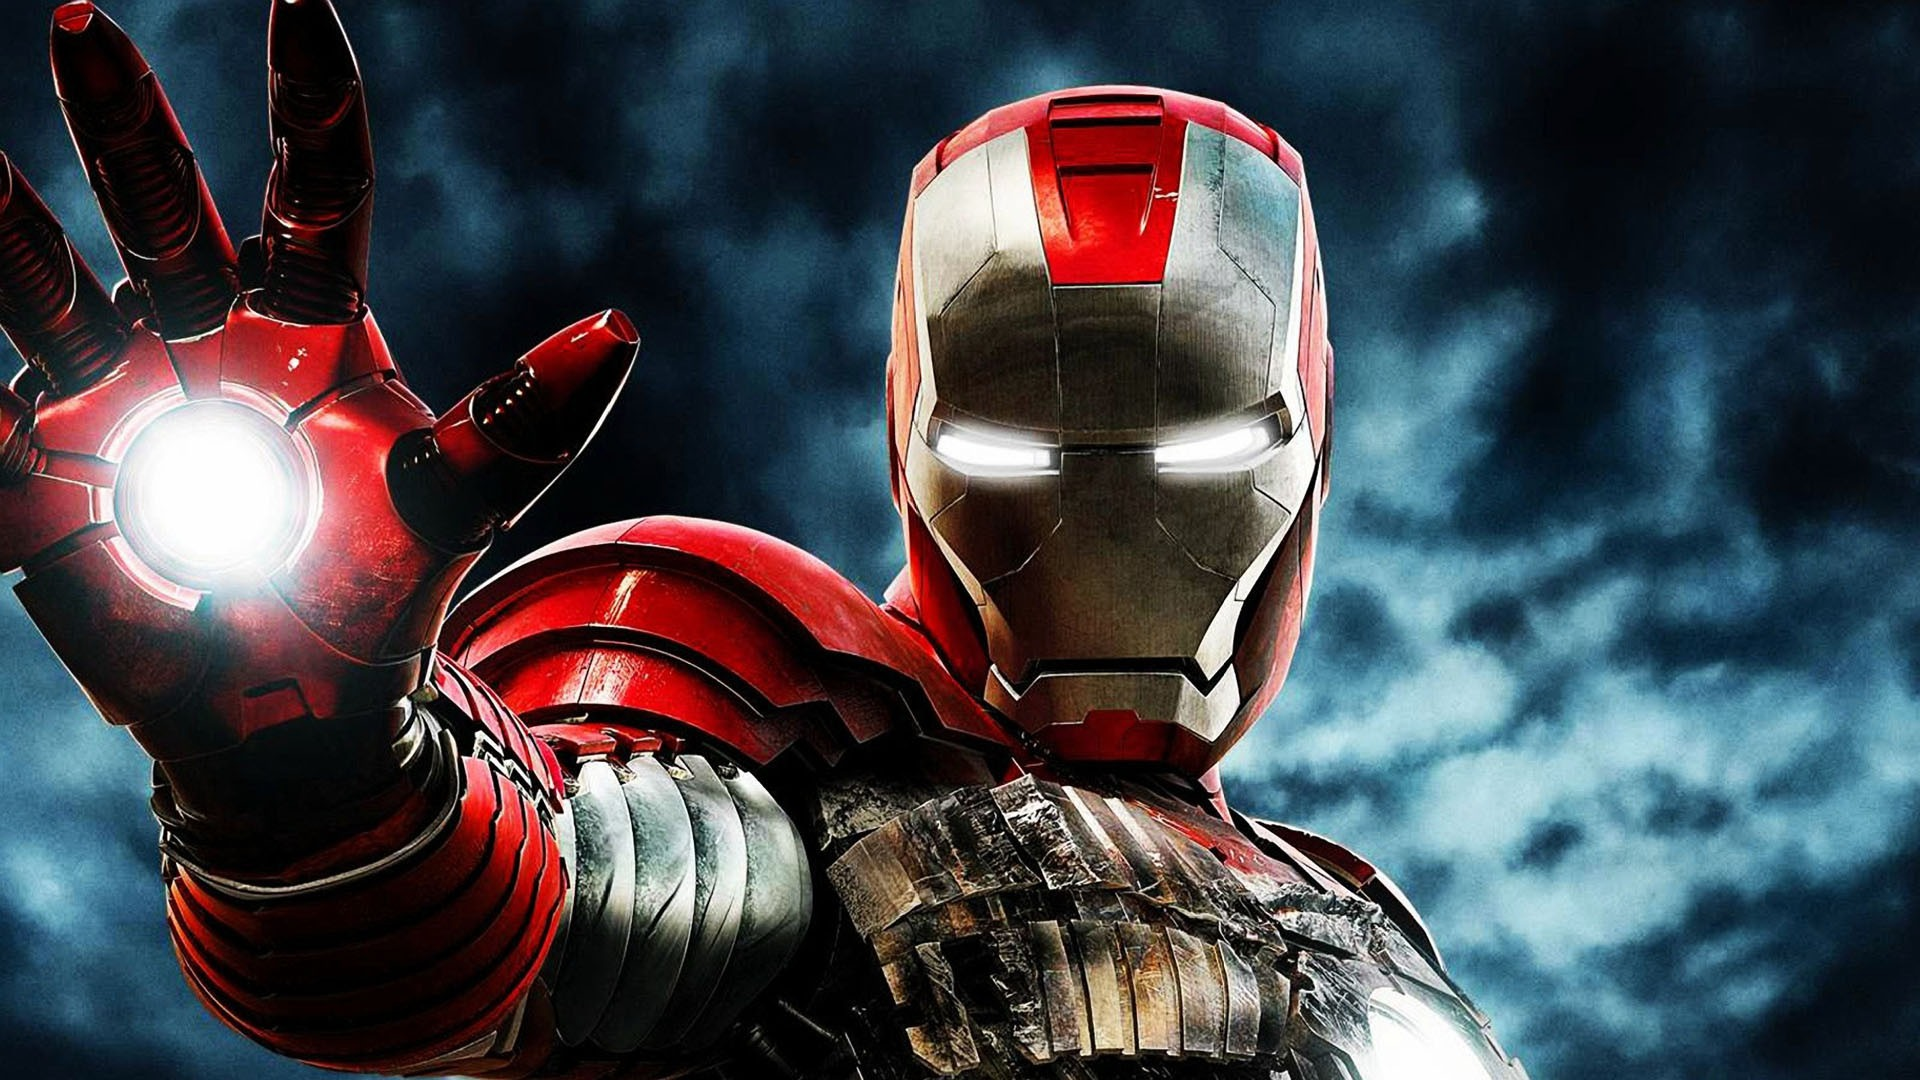 iron-man-wallpaper-hd-1366x768